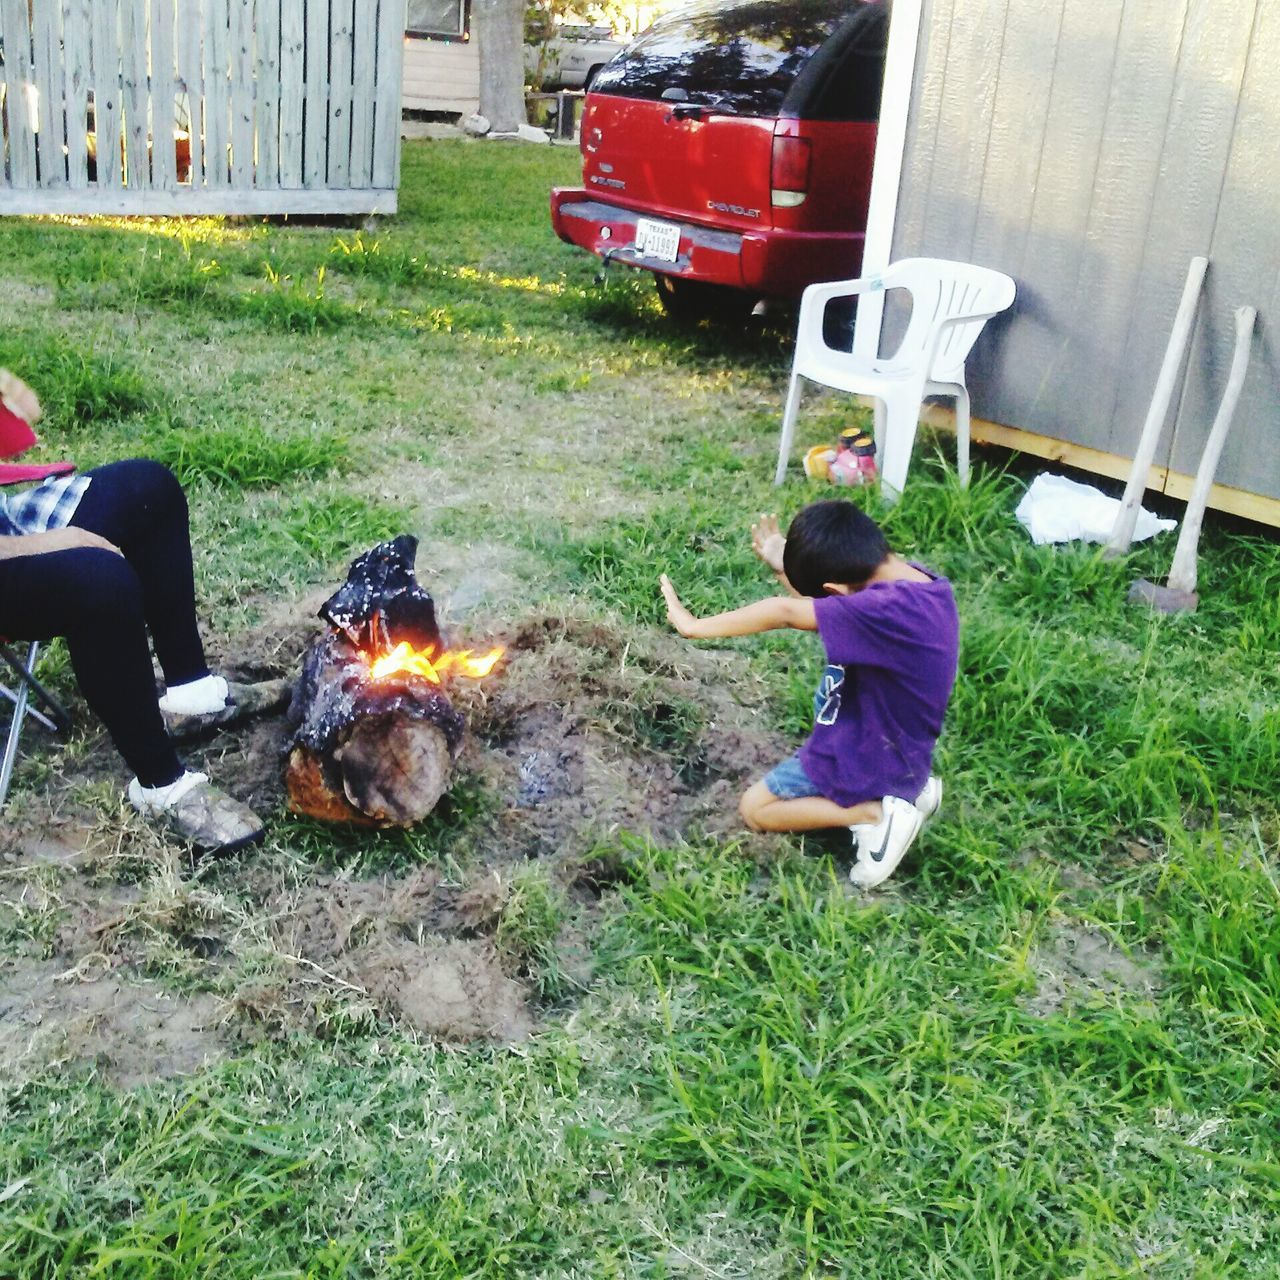 real people, grass, burning, flame, outdoors, field, full length, day, one person, leisure activity, men, boys, lifestyles, childhood, nature, building exterior, architecture